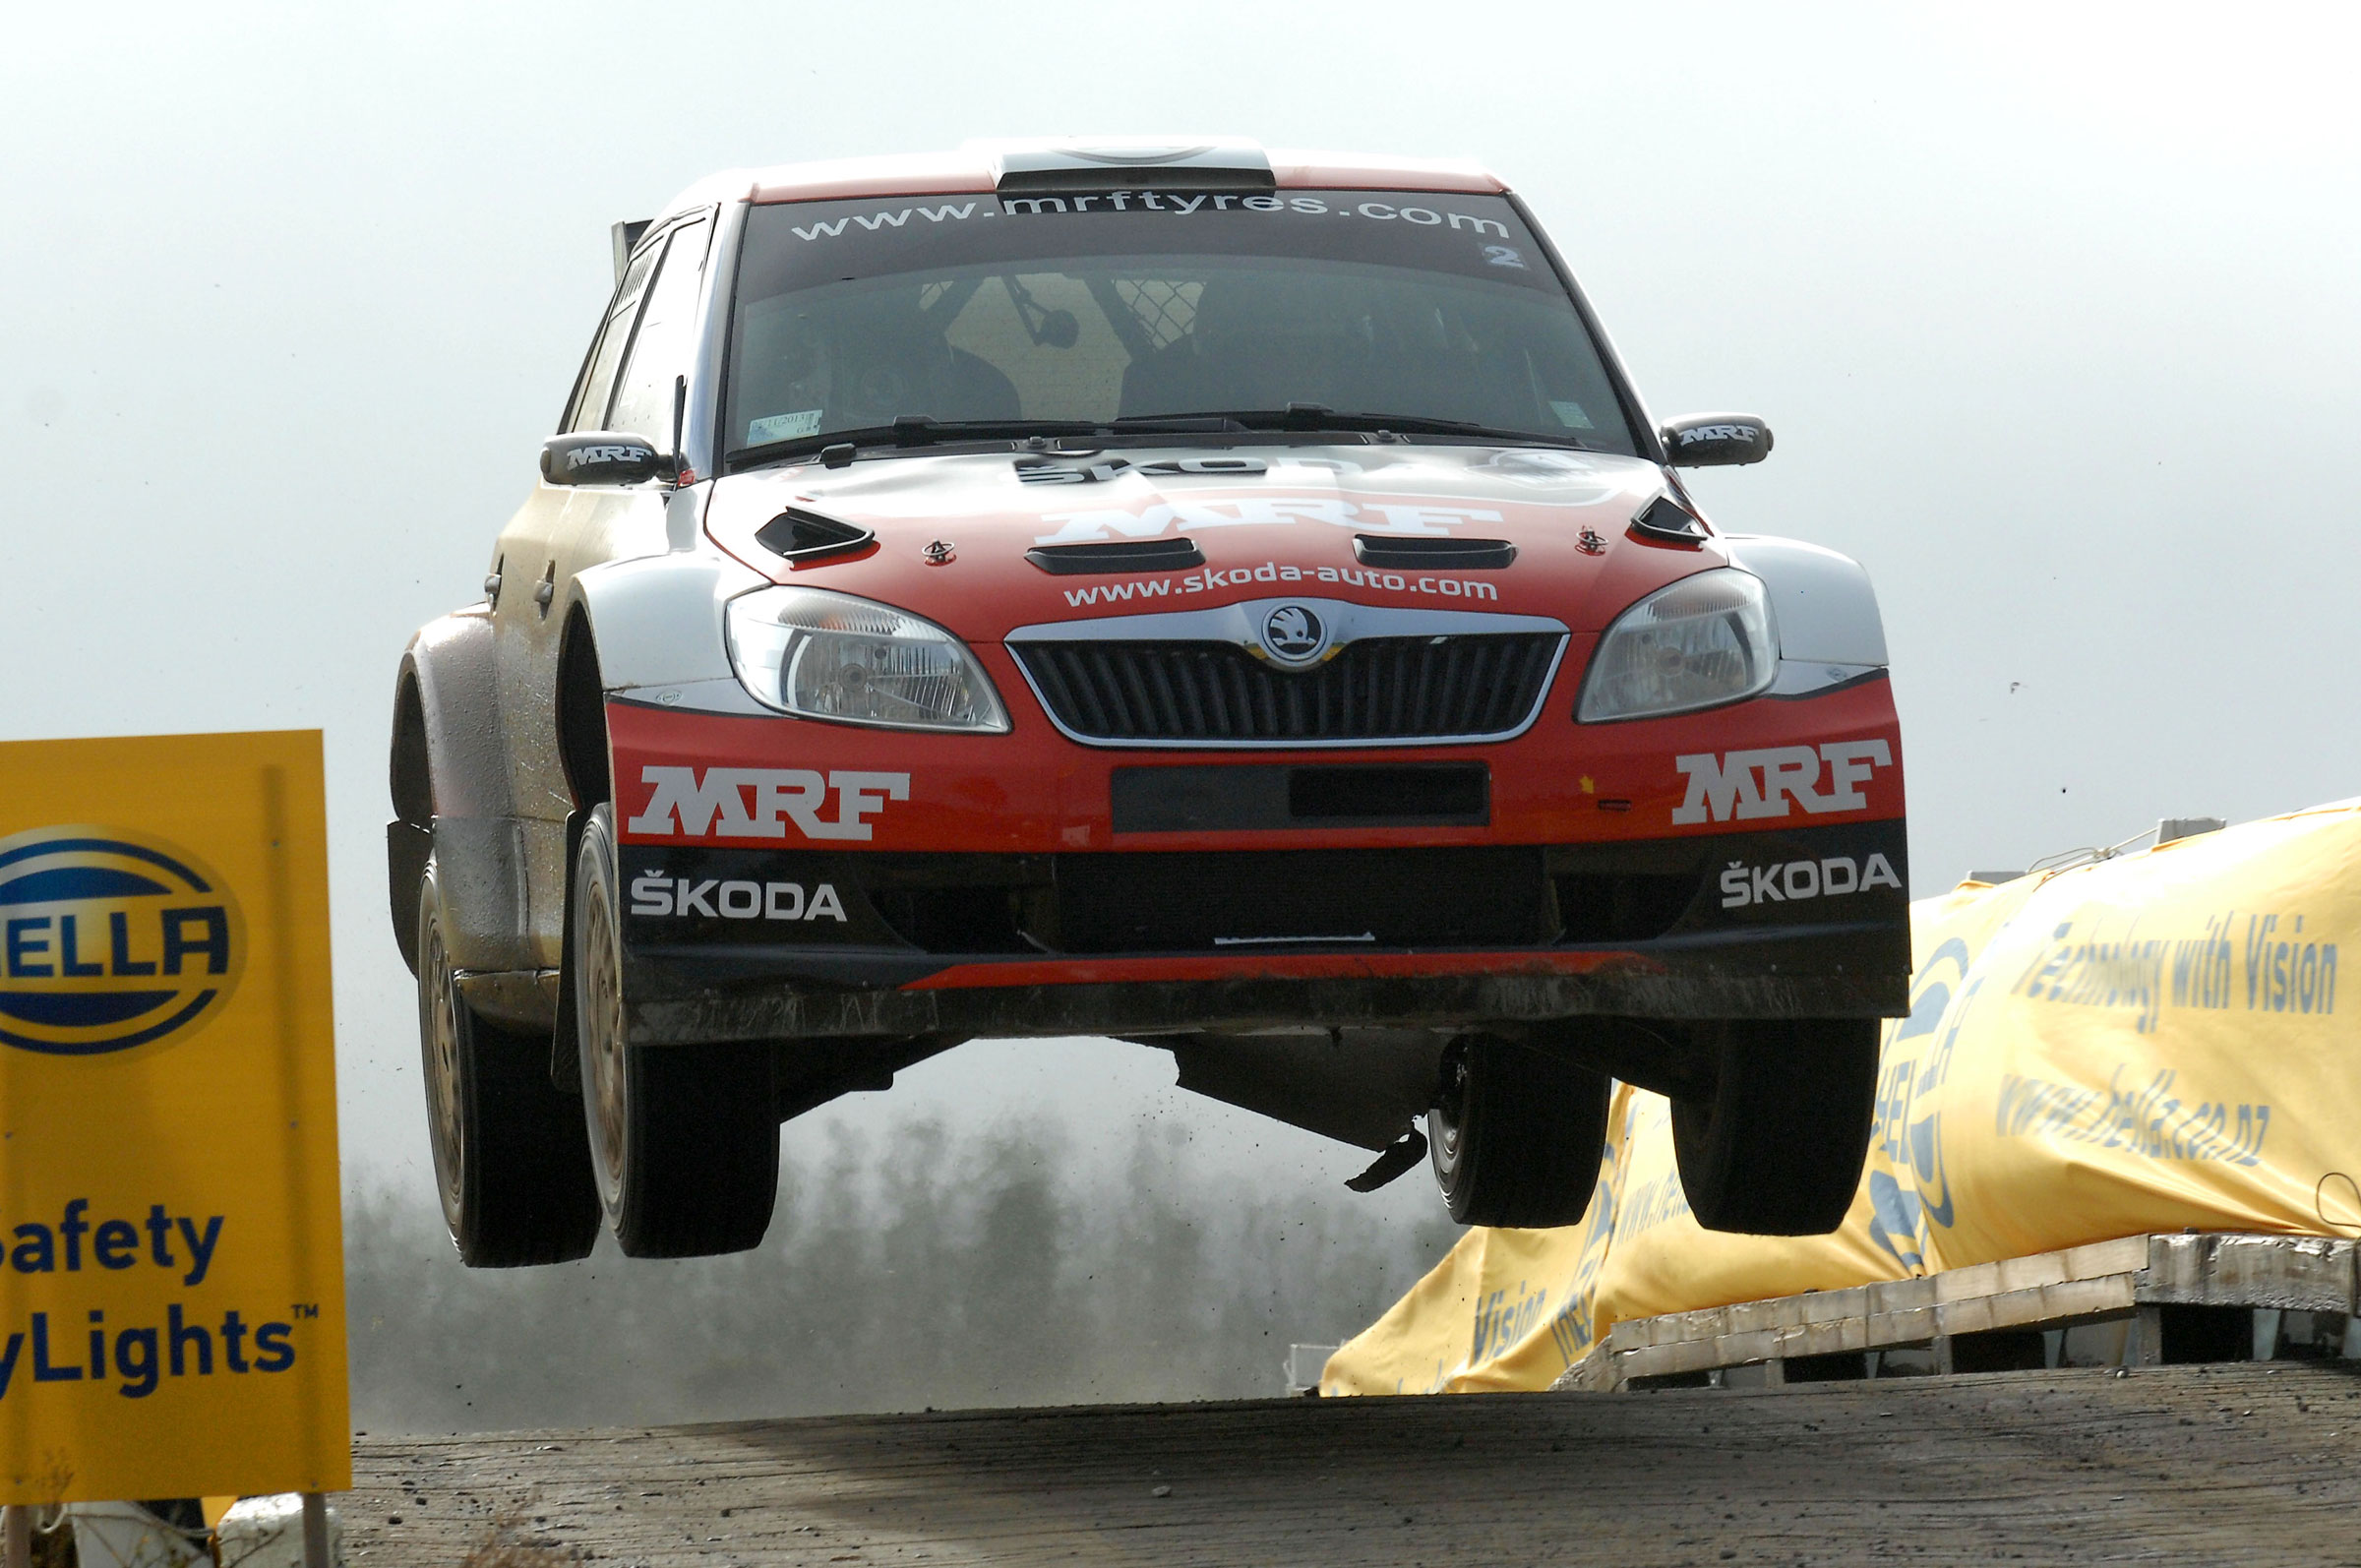 Defending champion to carve new path at International Rally of Whangarei